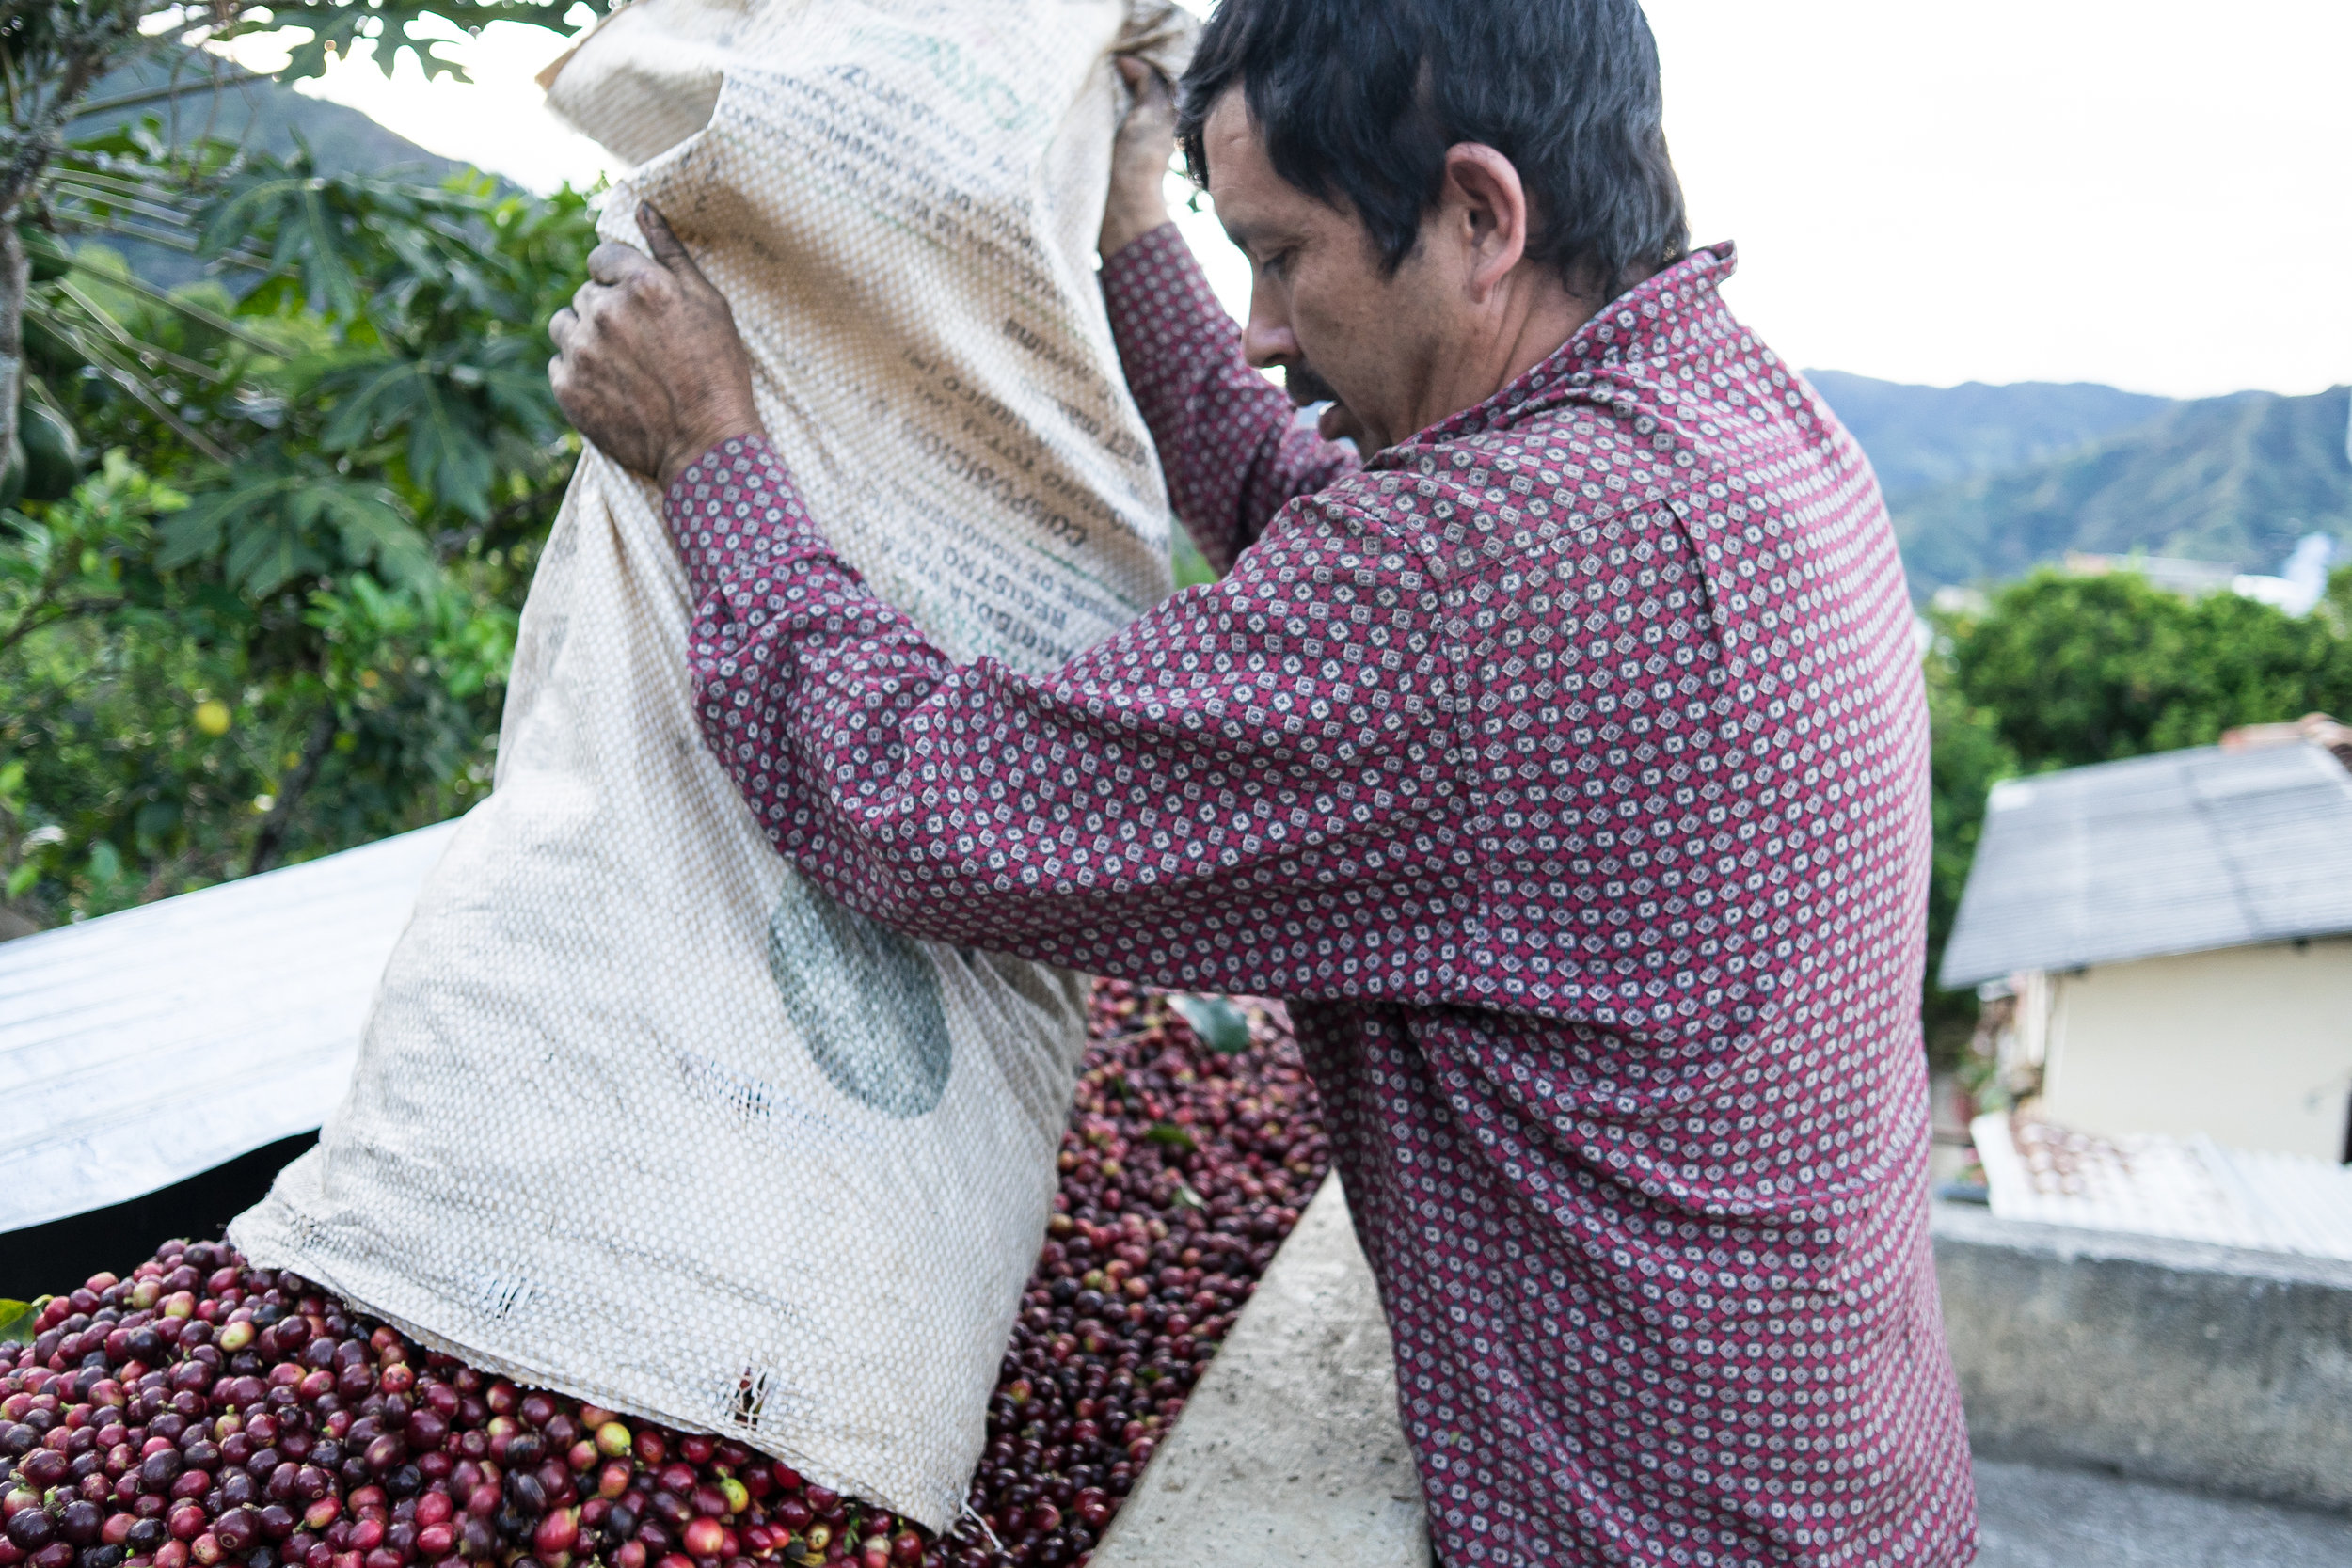 One of the pickers releasing his harvest into the pulping feeder on top of the Argote estate roof.